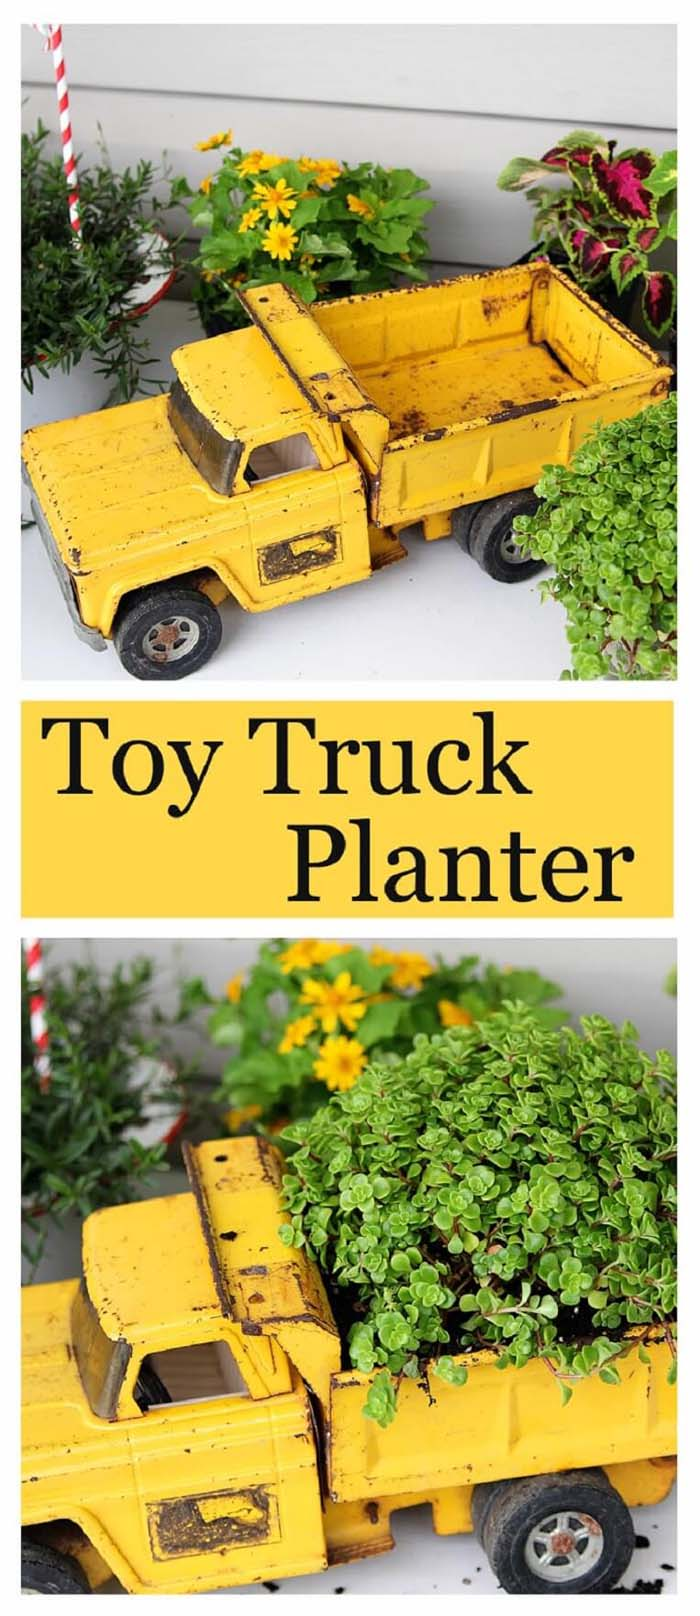 Repurposed Garden Container Ideas with a Toy Truck #repurposedplanter #repurposedcontainer #decorhomeideas